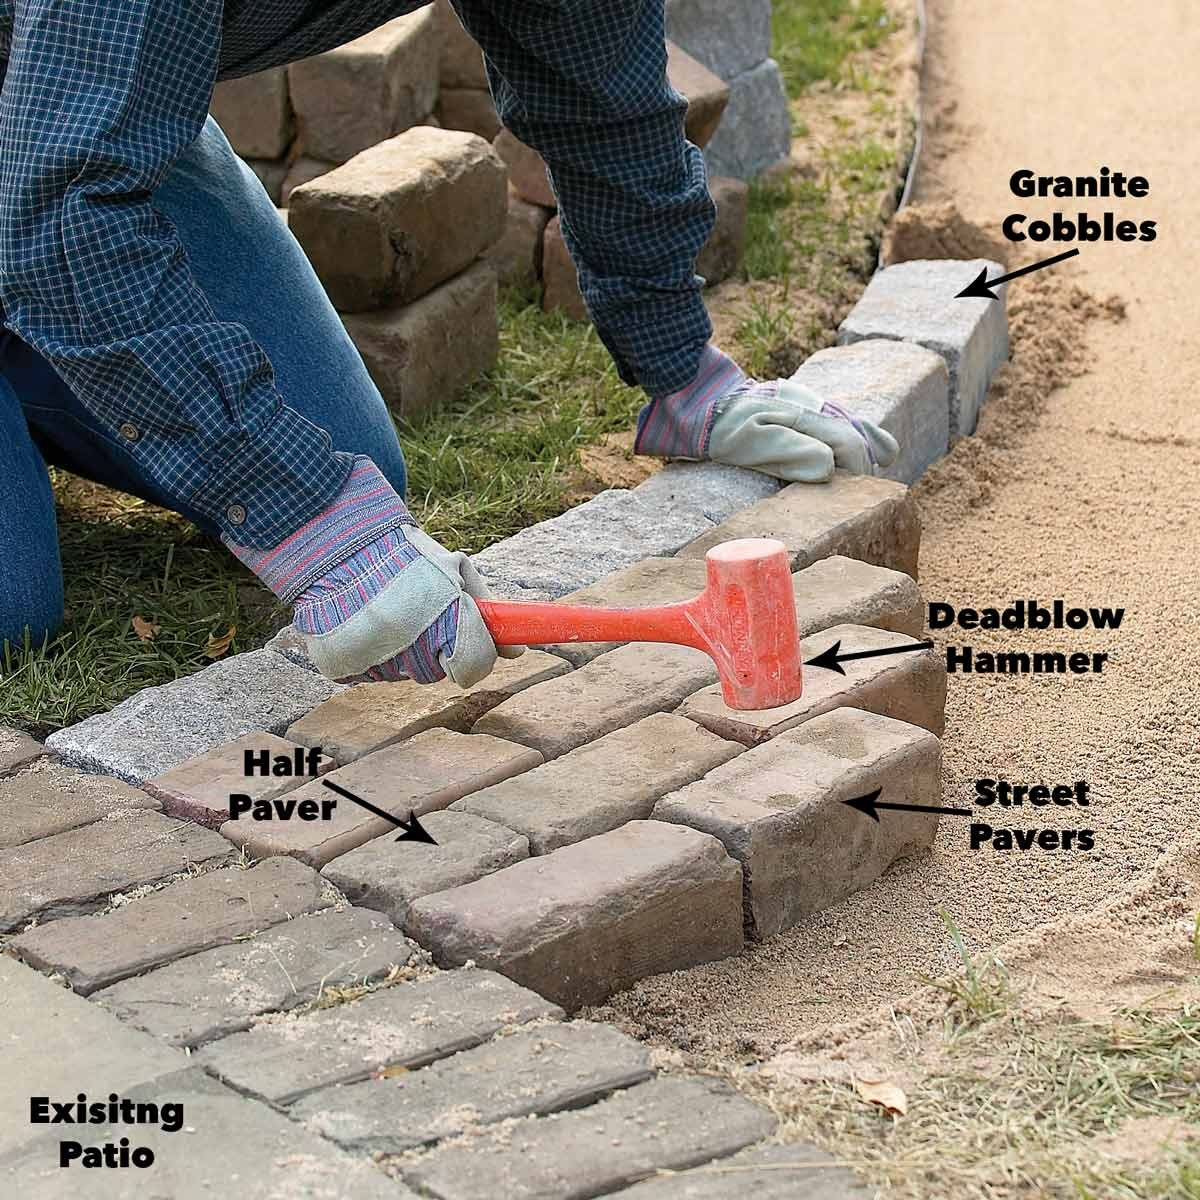 Laying Pavers Over Dirt: Build A Brick Pathway In The Garden